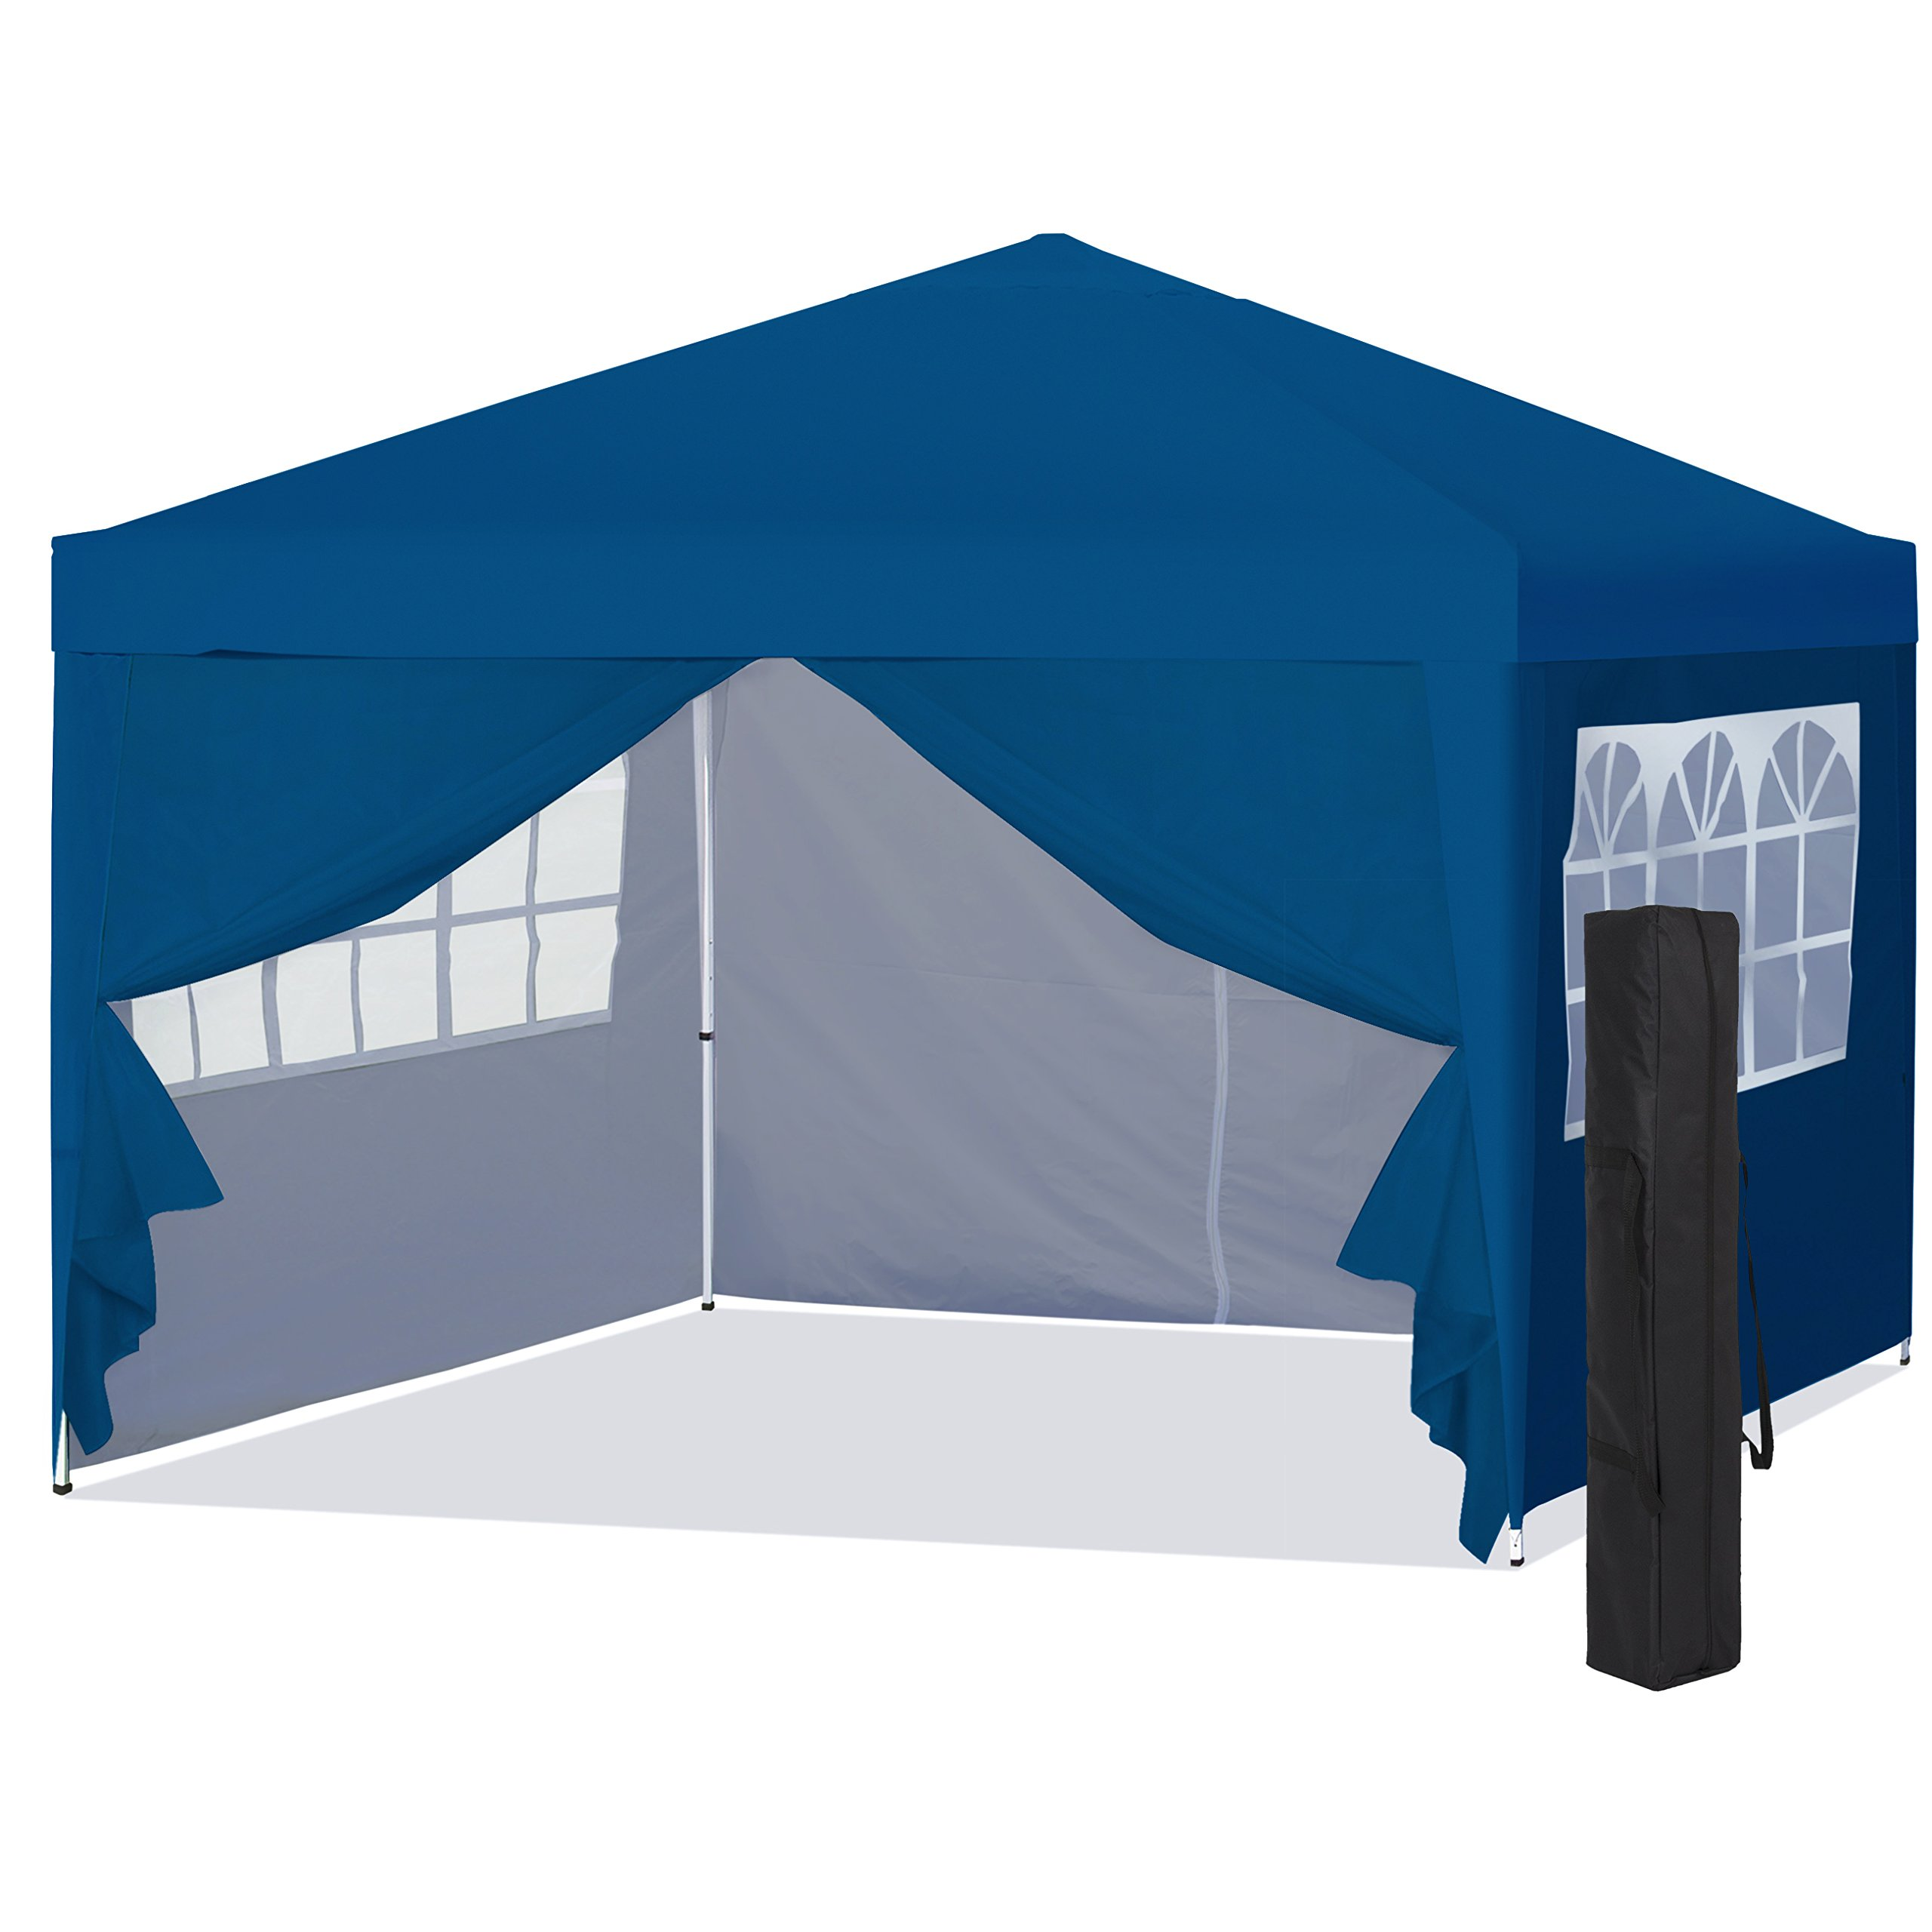 Best Choice Products 10x10ft Portable Lightweight Pop Up Canopy Tent w/Side Walls and Carrying Bag - Blue/Silver